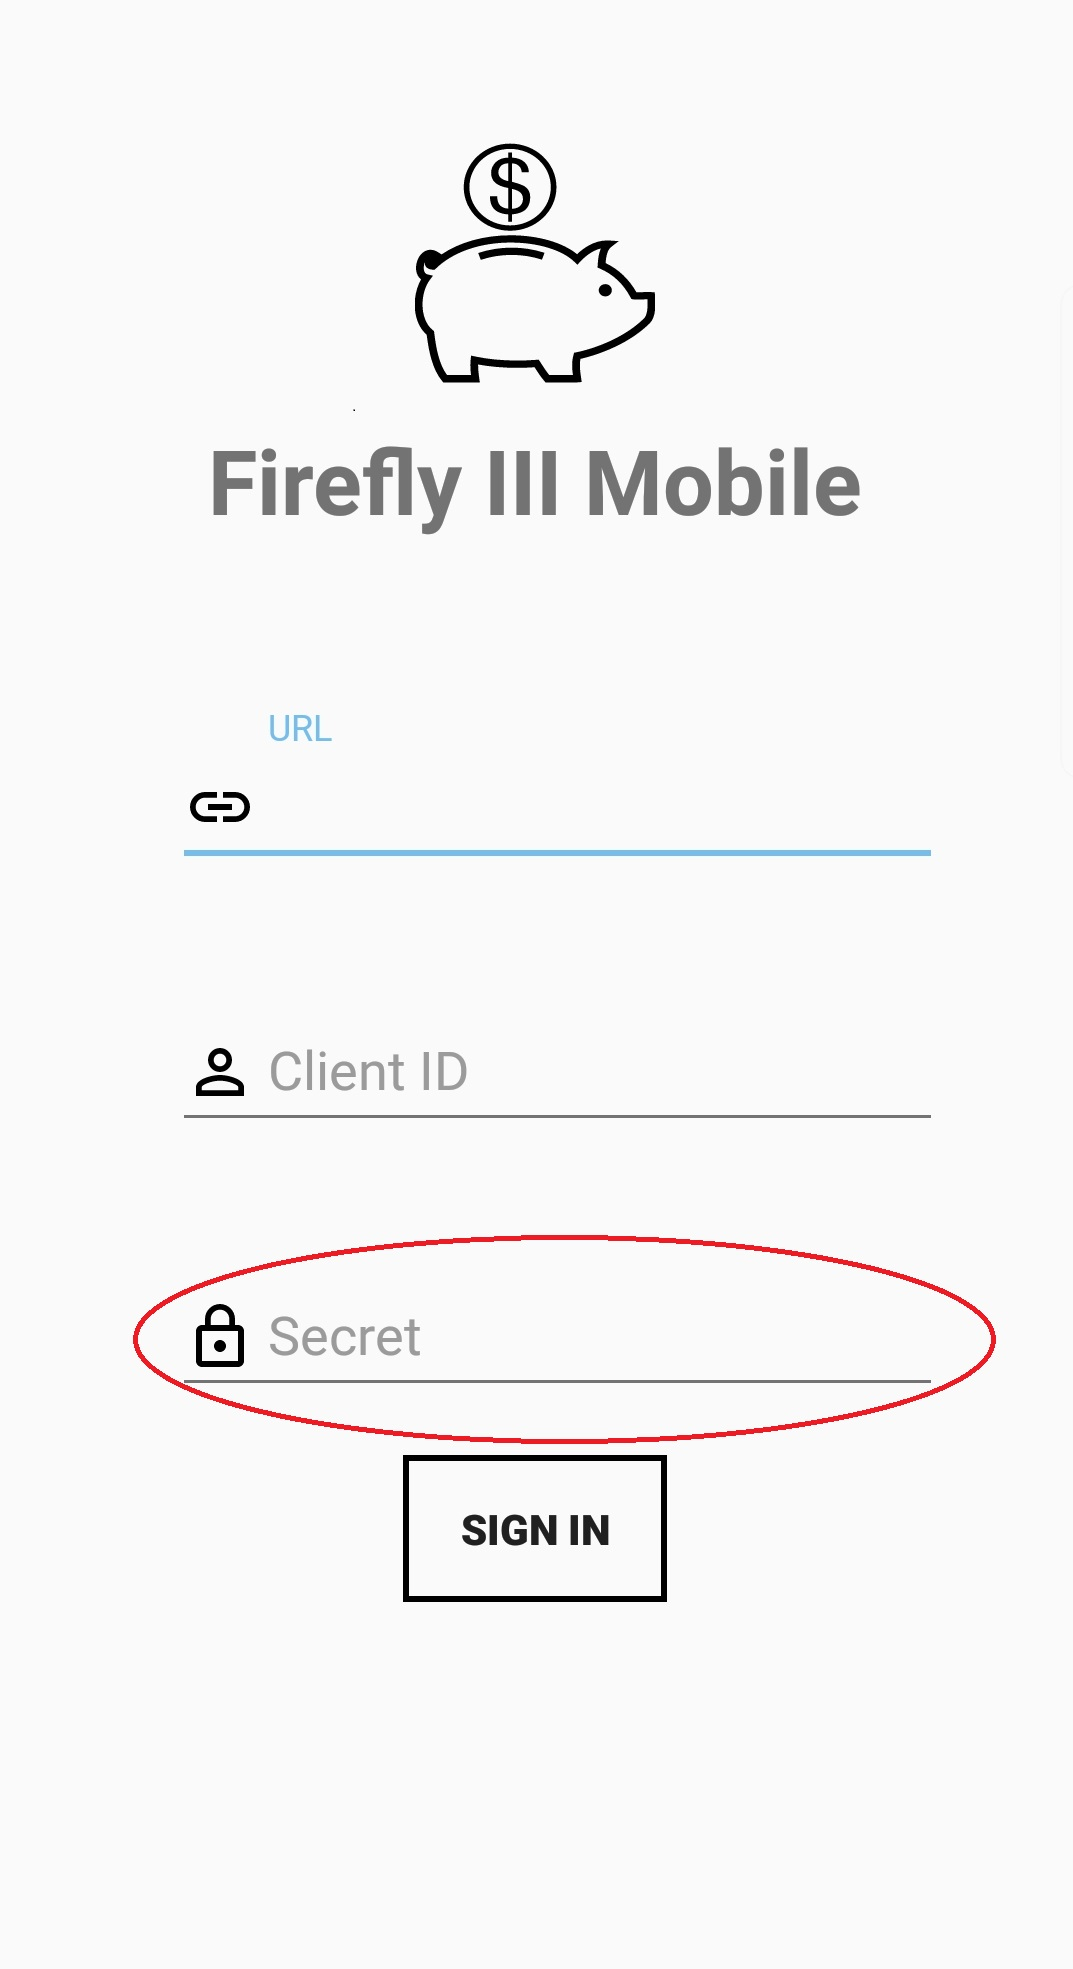 firefly-mobile-oauth